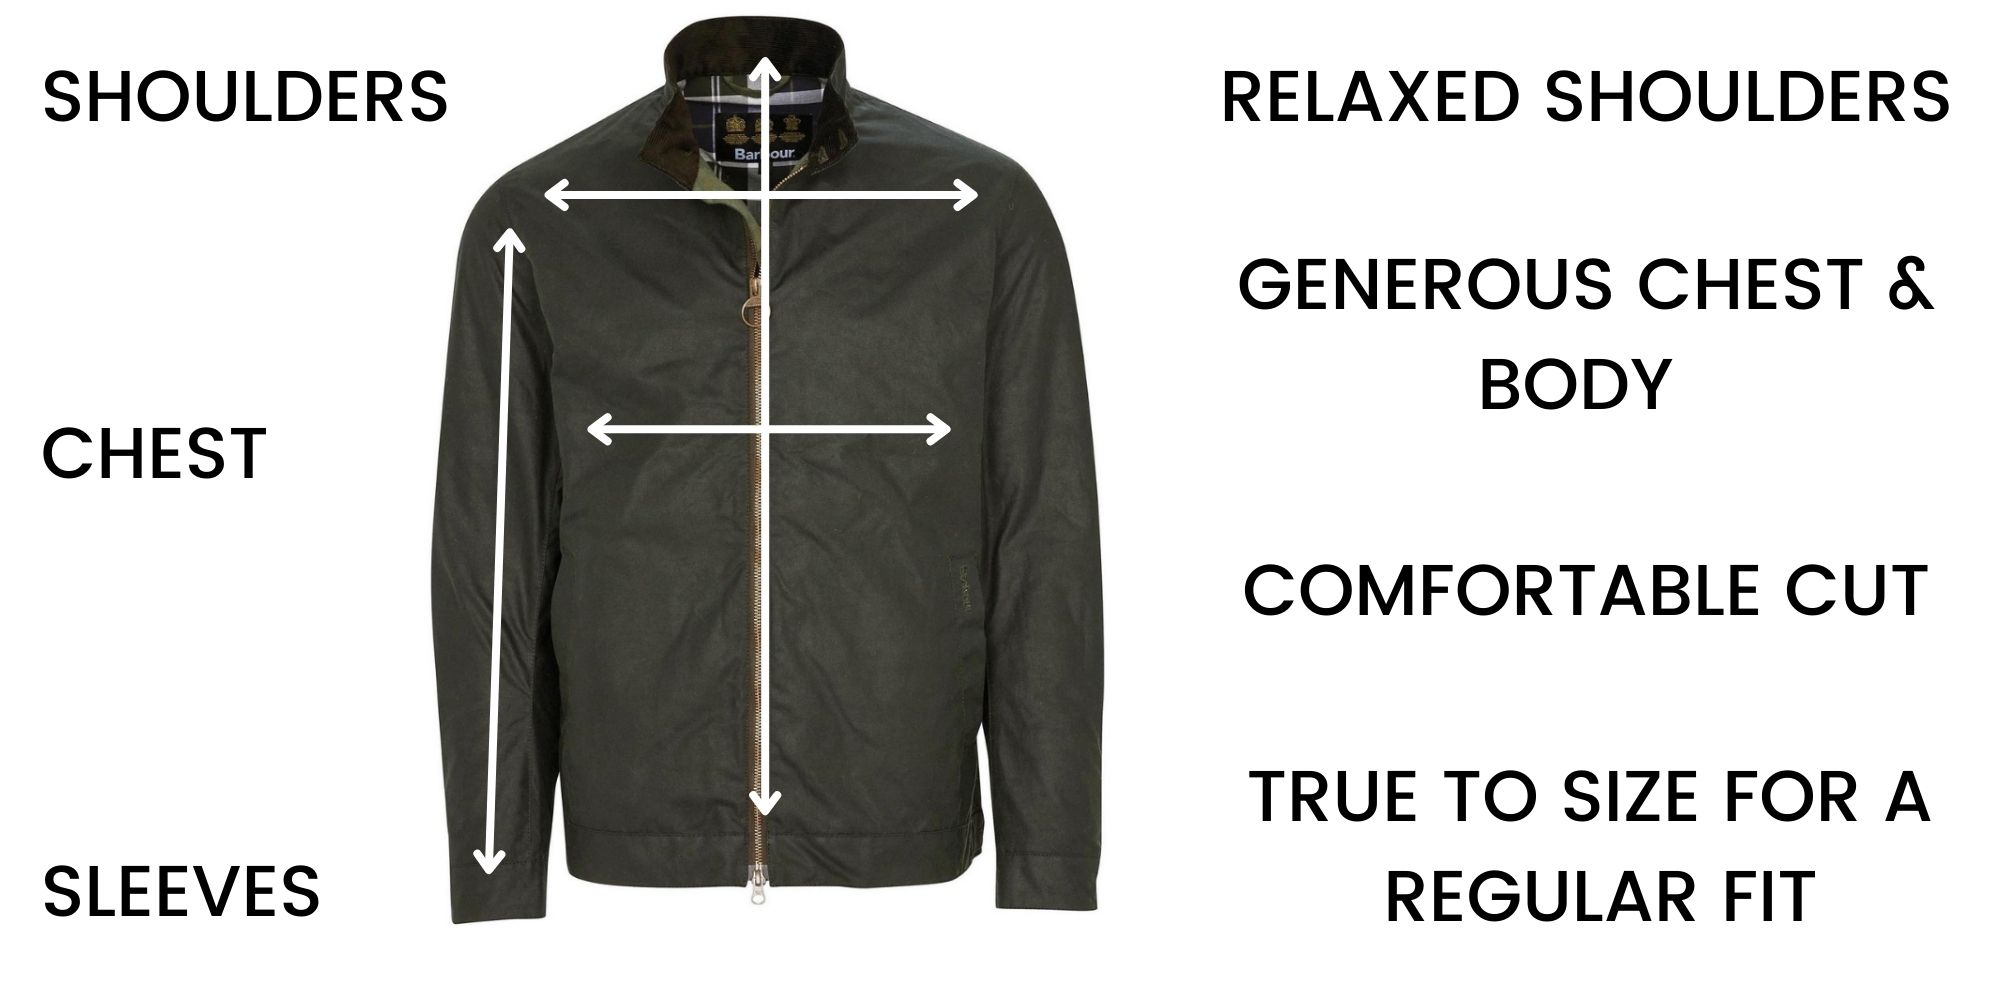 Barbour Casual Jackets Size Guide